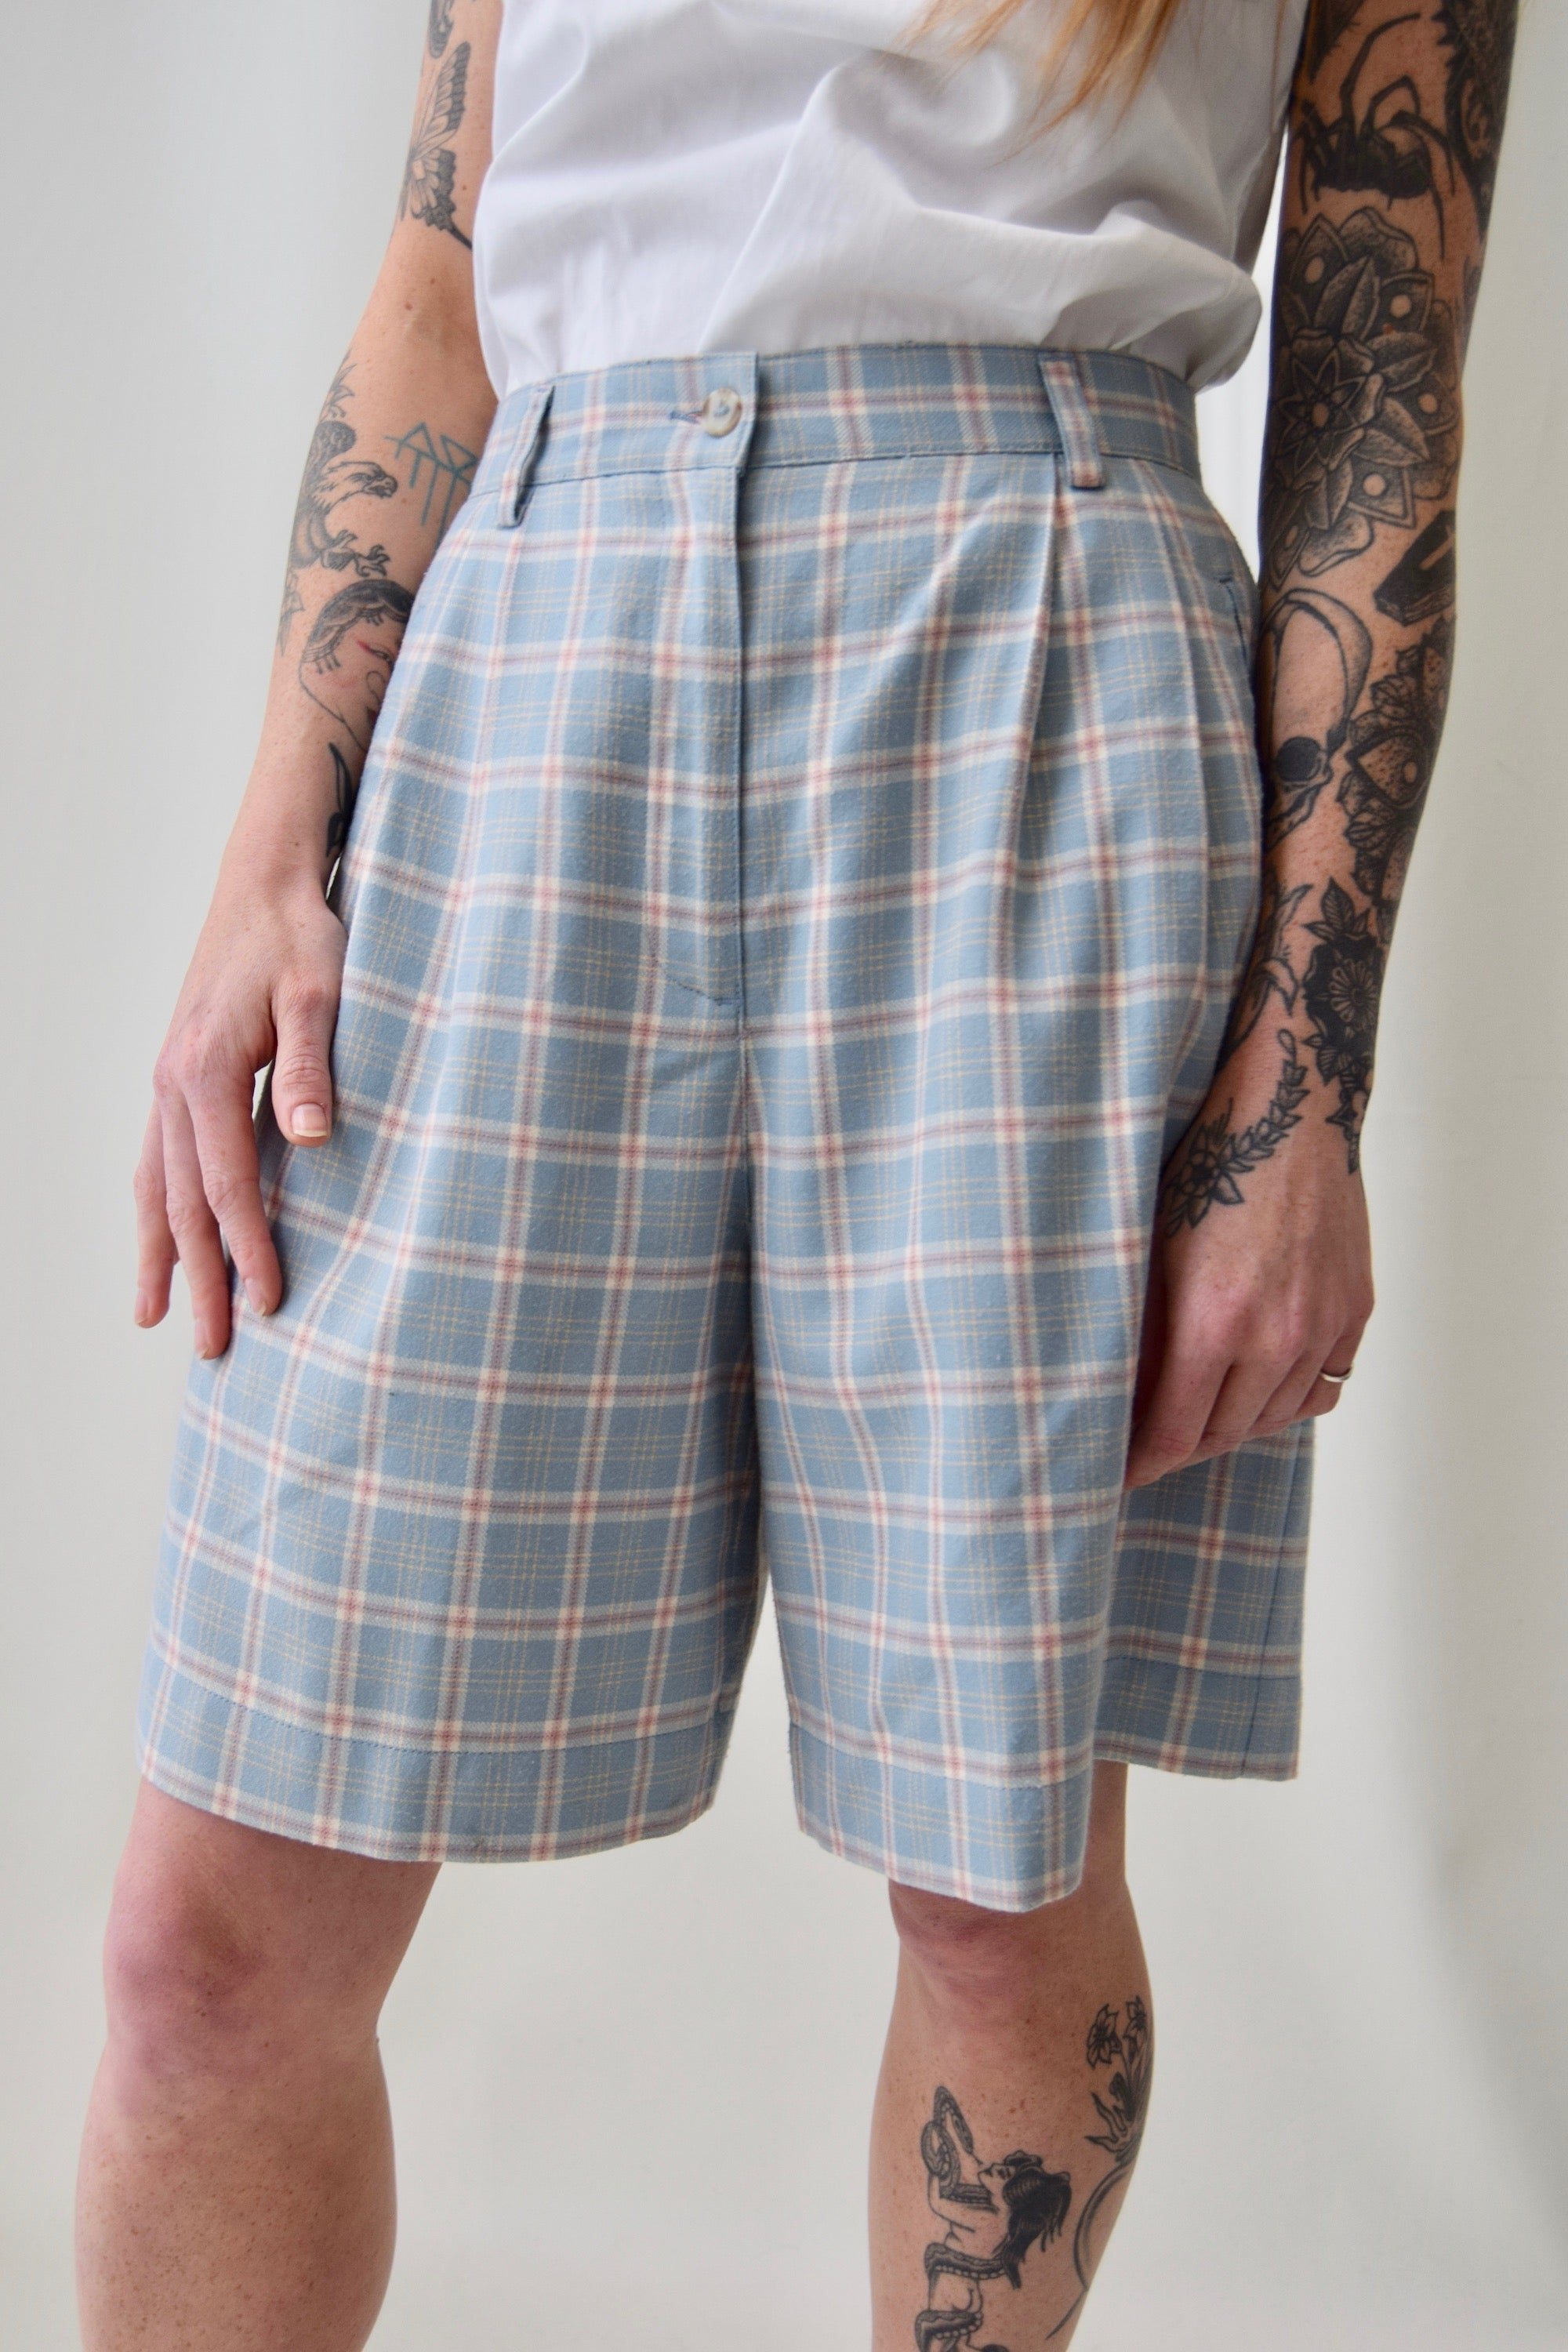 Pastel Plaid Shorts